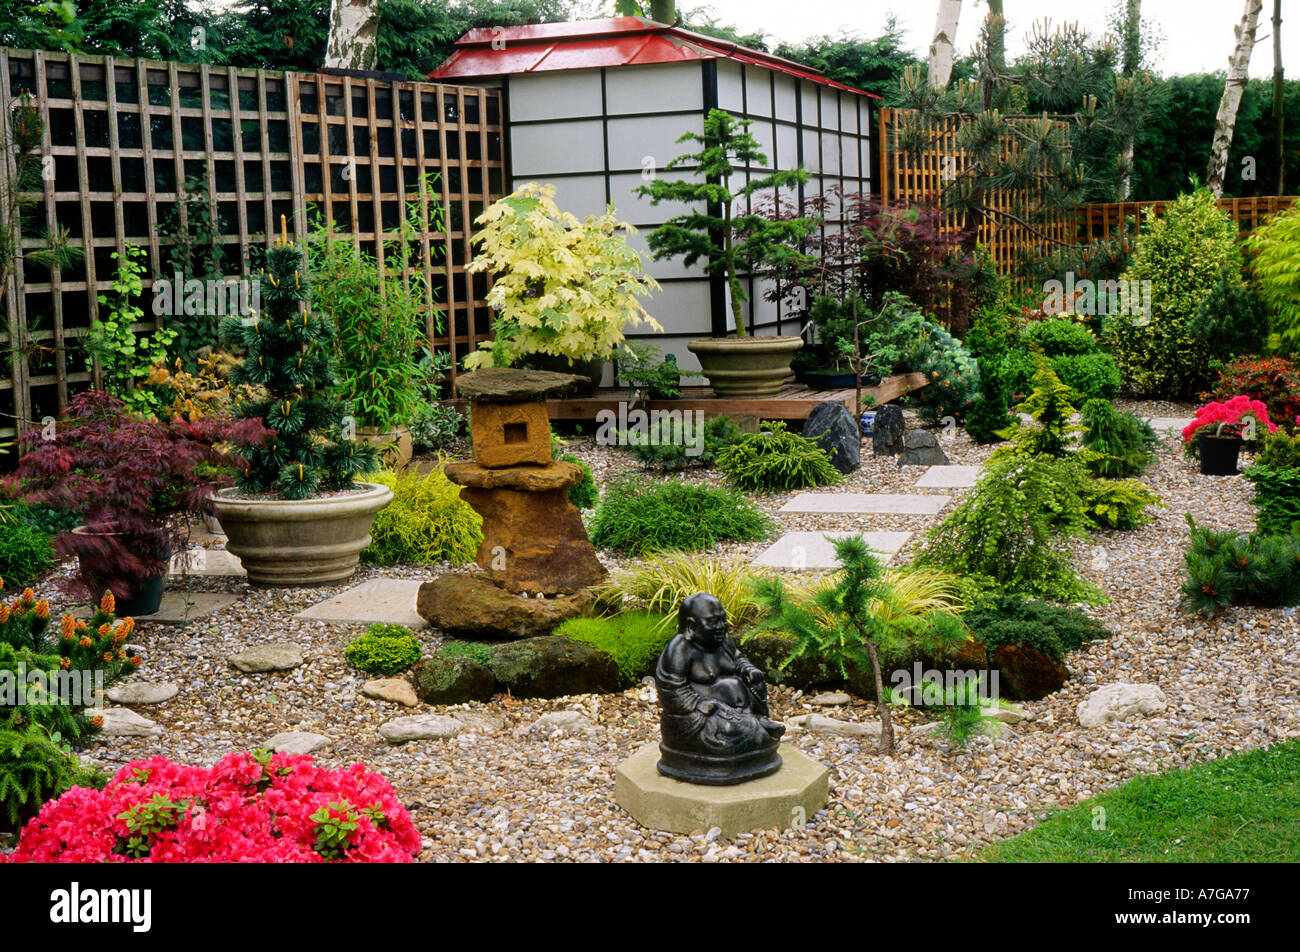 Japanese Style Small Garden England UK Garden Small Garden Ornaments Buddha  Gravel Miniature Trees Acers Pavilion Design